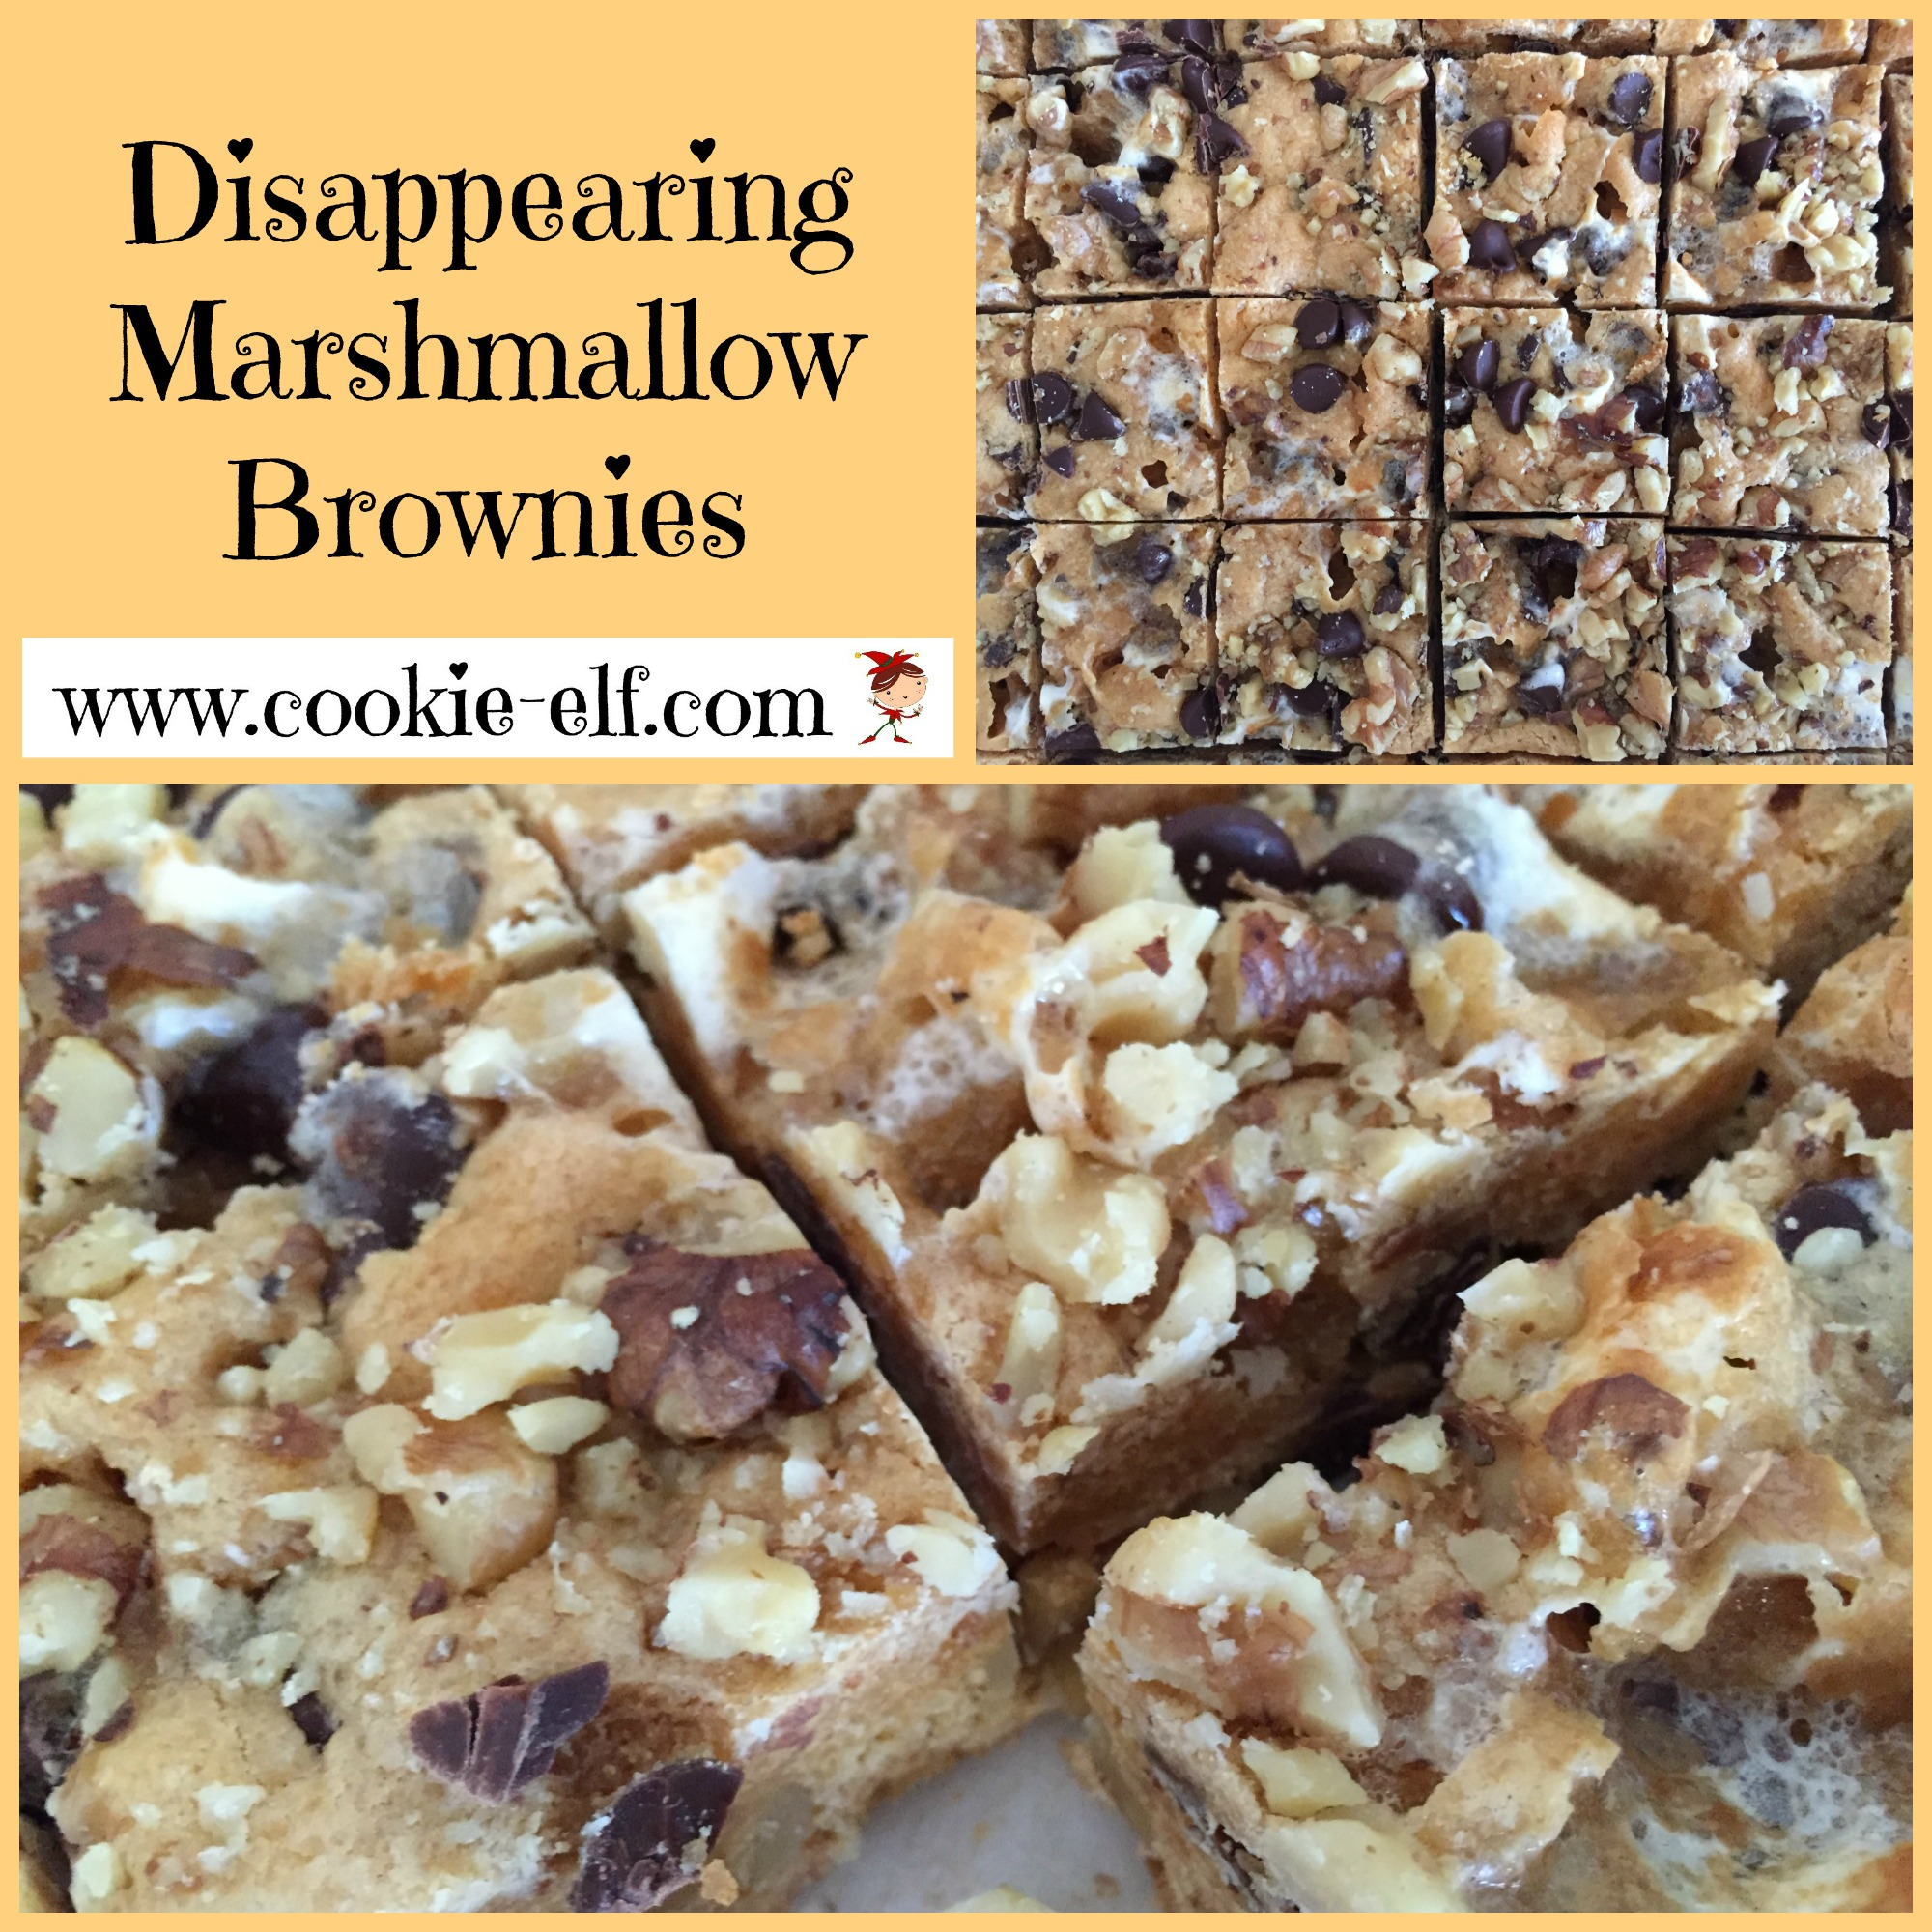 Disappearing Marshmallow Brownies from The Cookie Elf